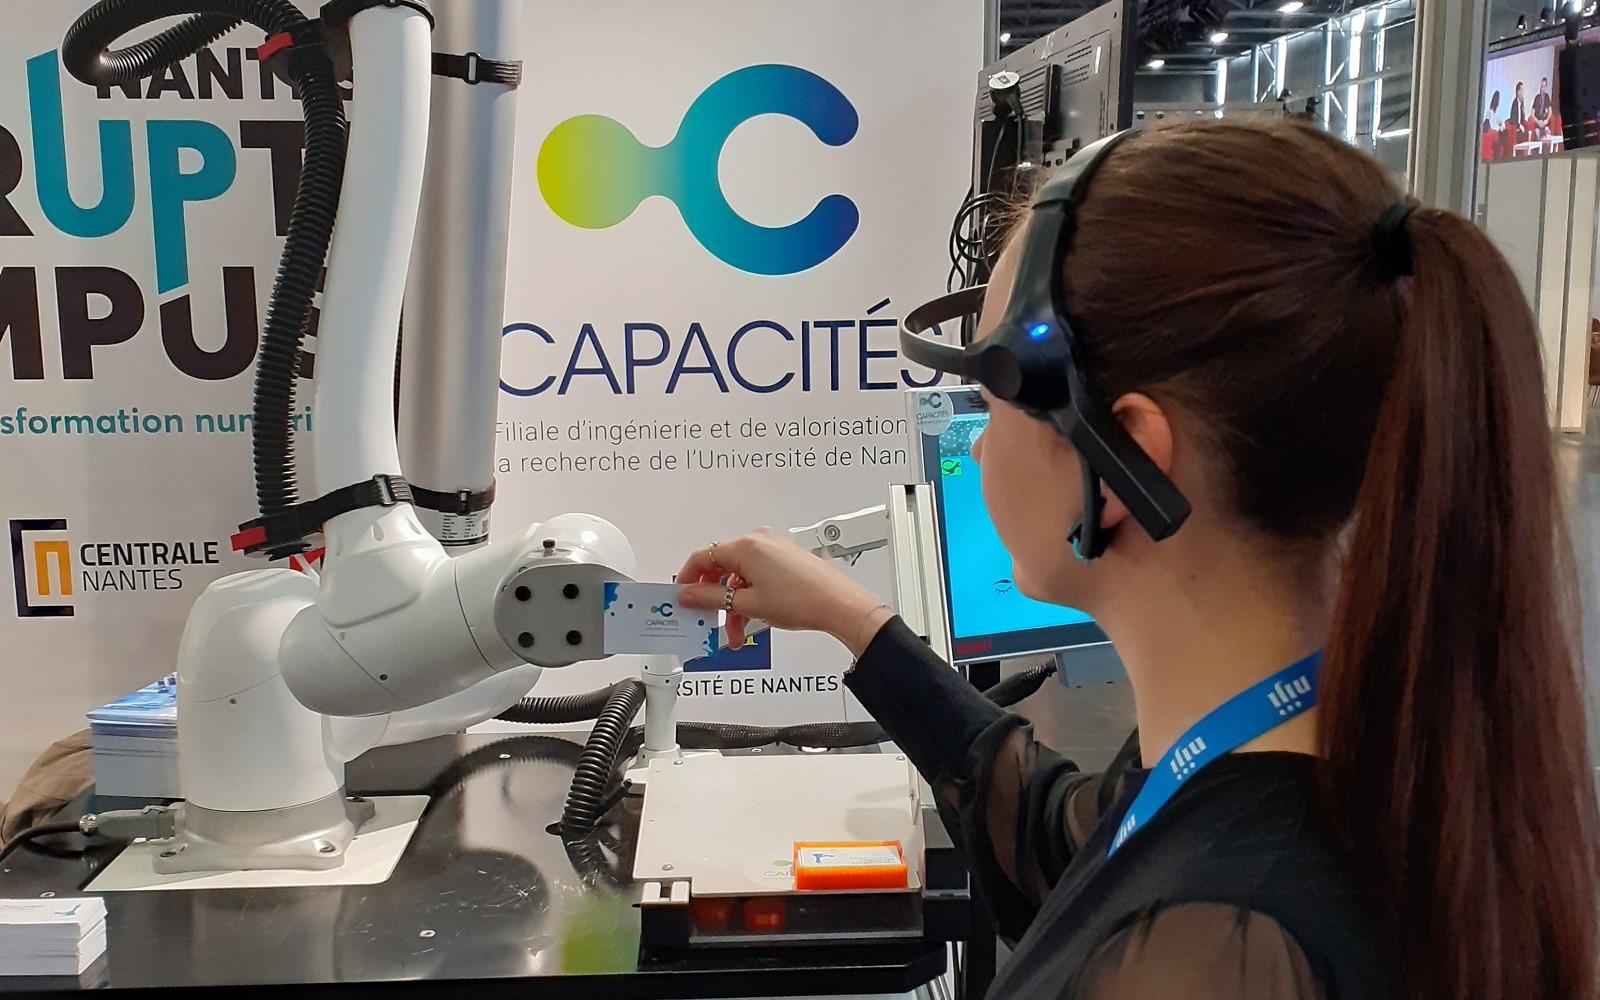 Capacités is a private company